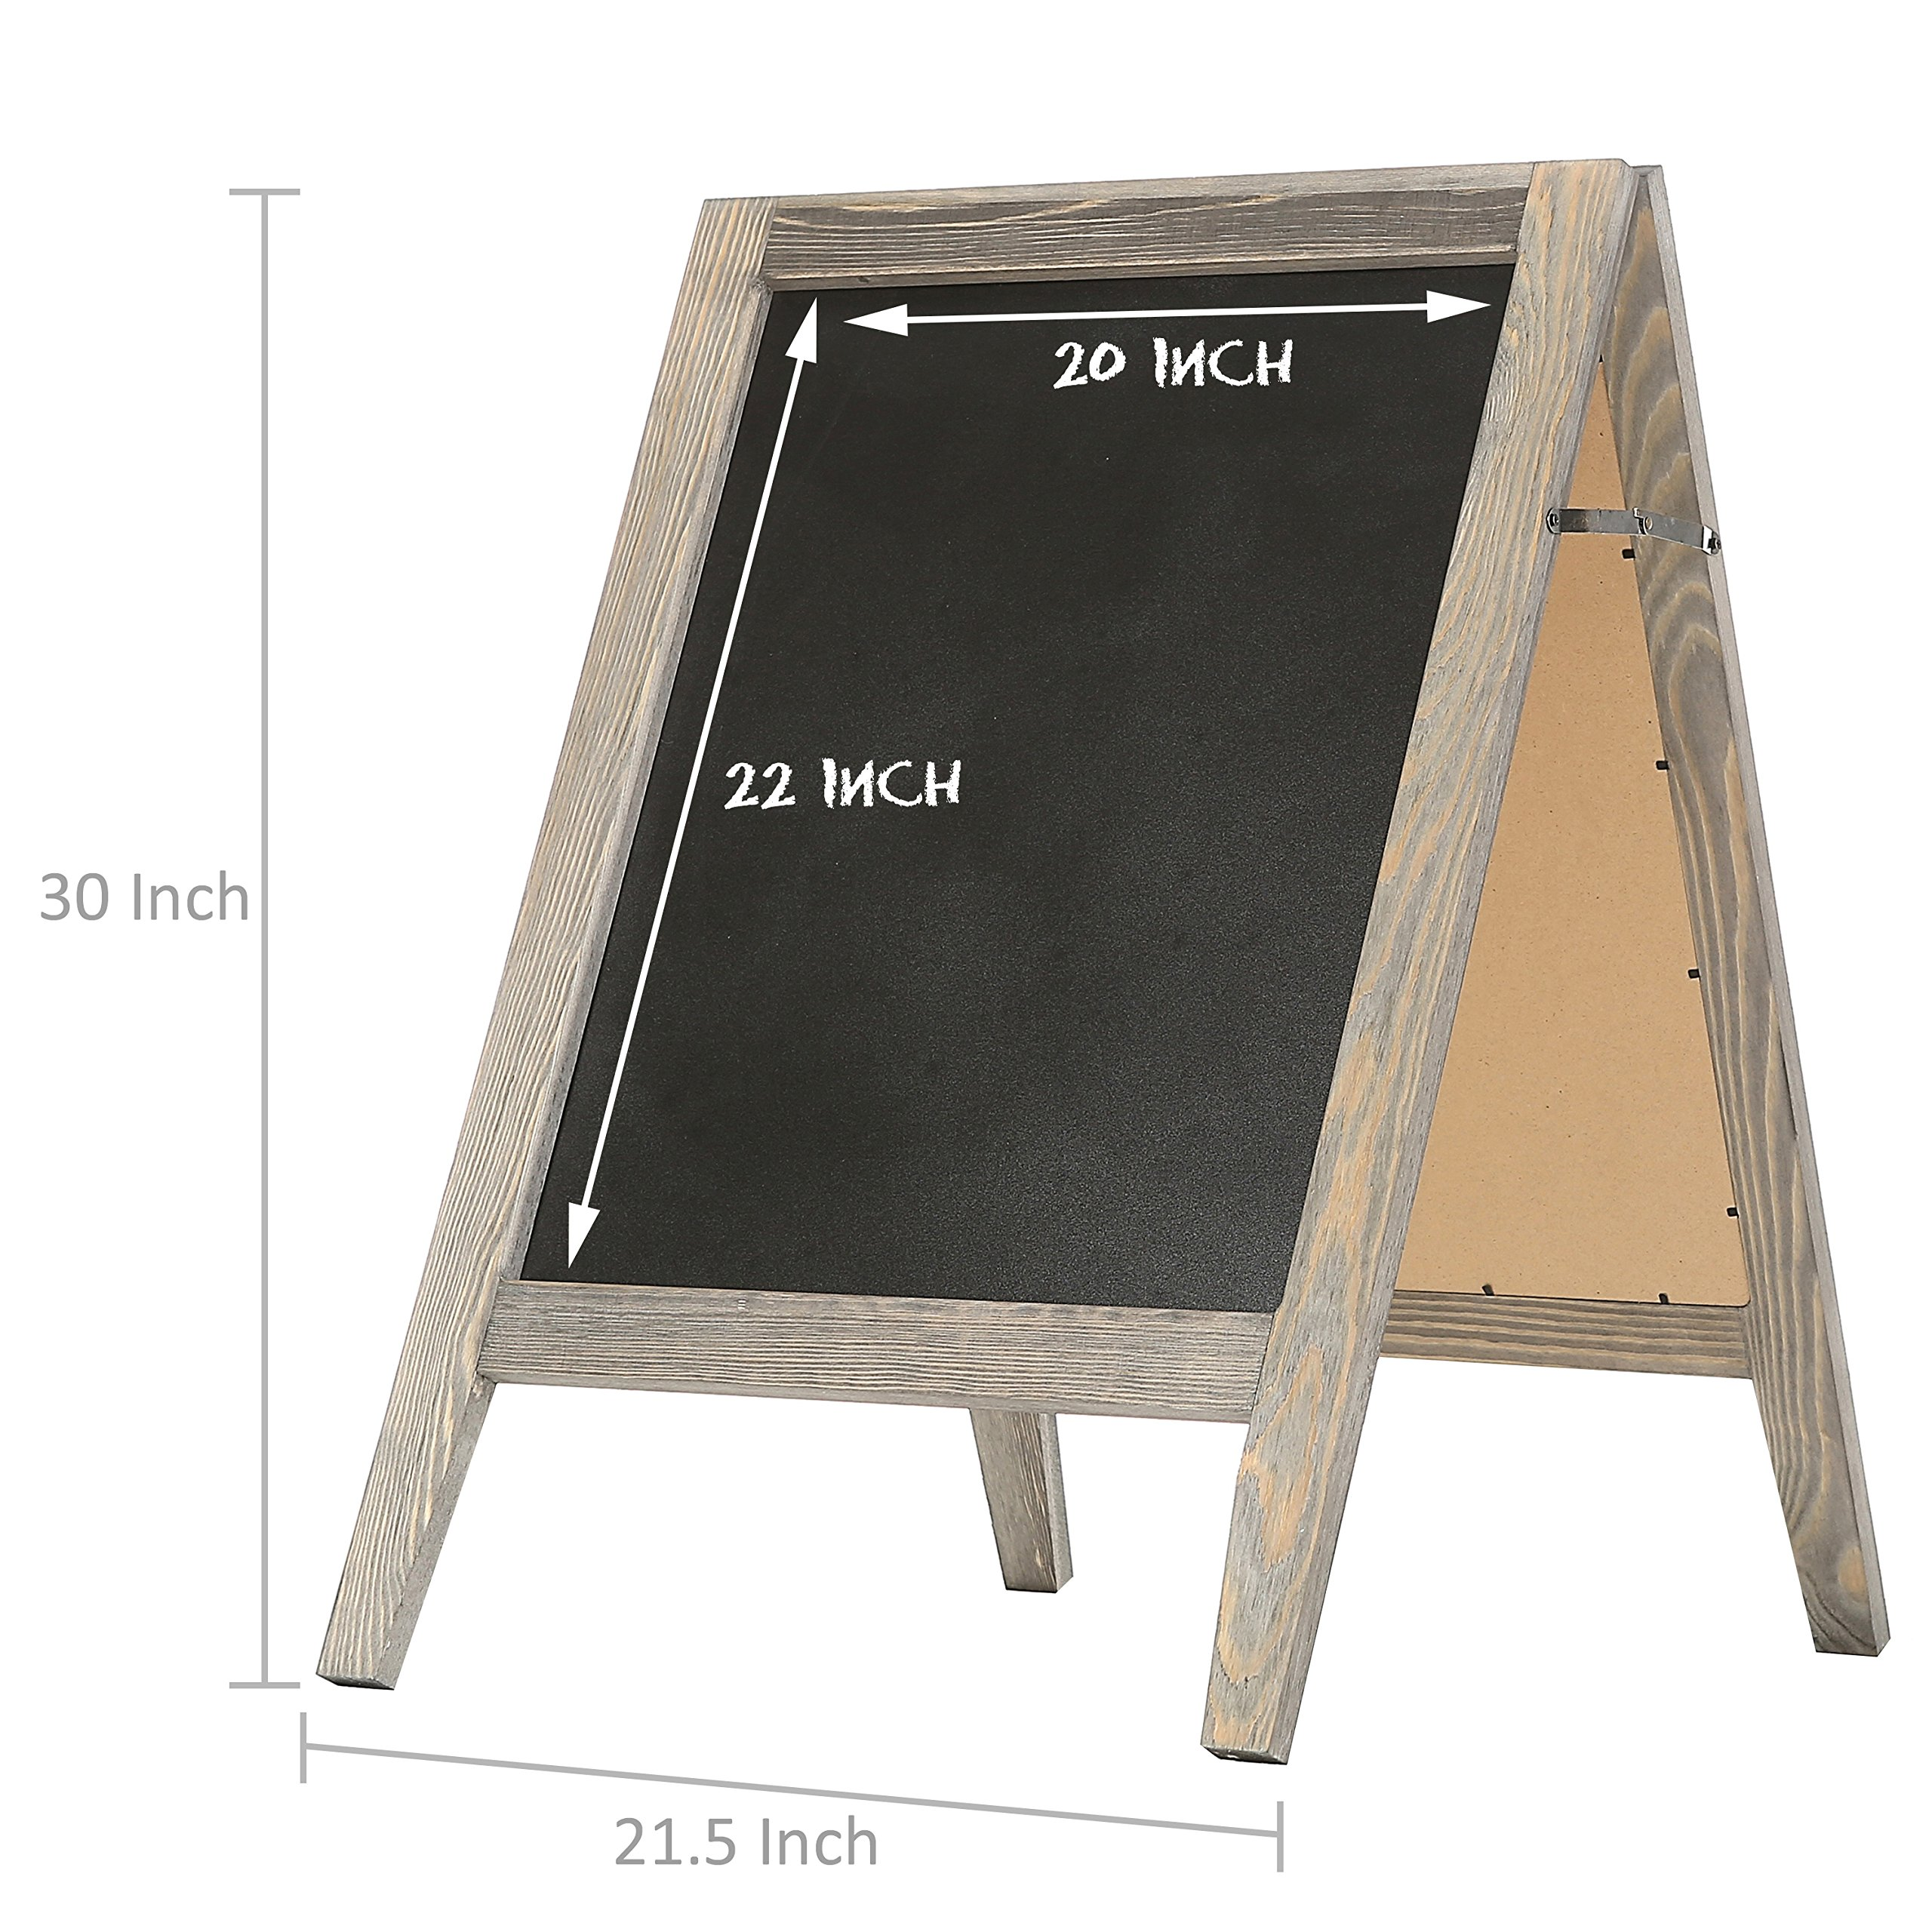 Rustic Stained Vintaged Wooden Freestanding A-Frame Double-Sided Chalkboard Sidewalk Sign by MyGift (Image #6)